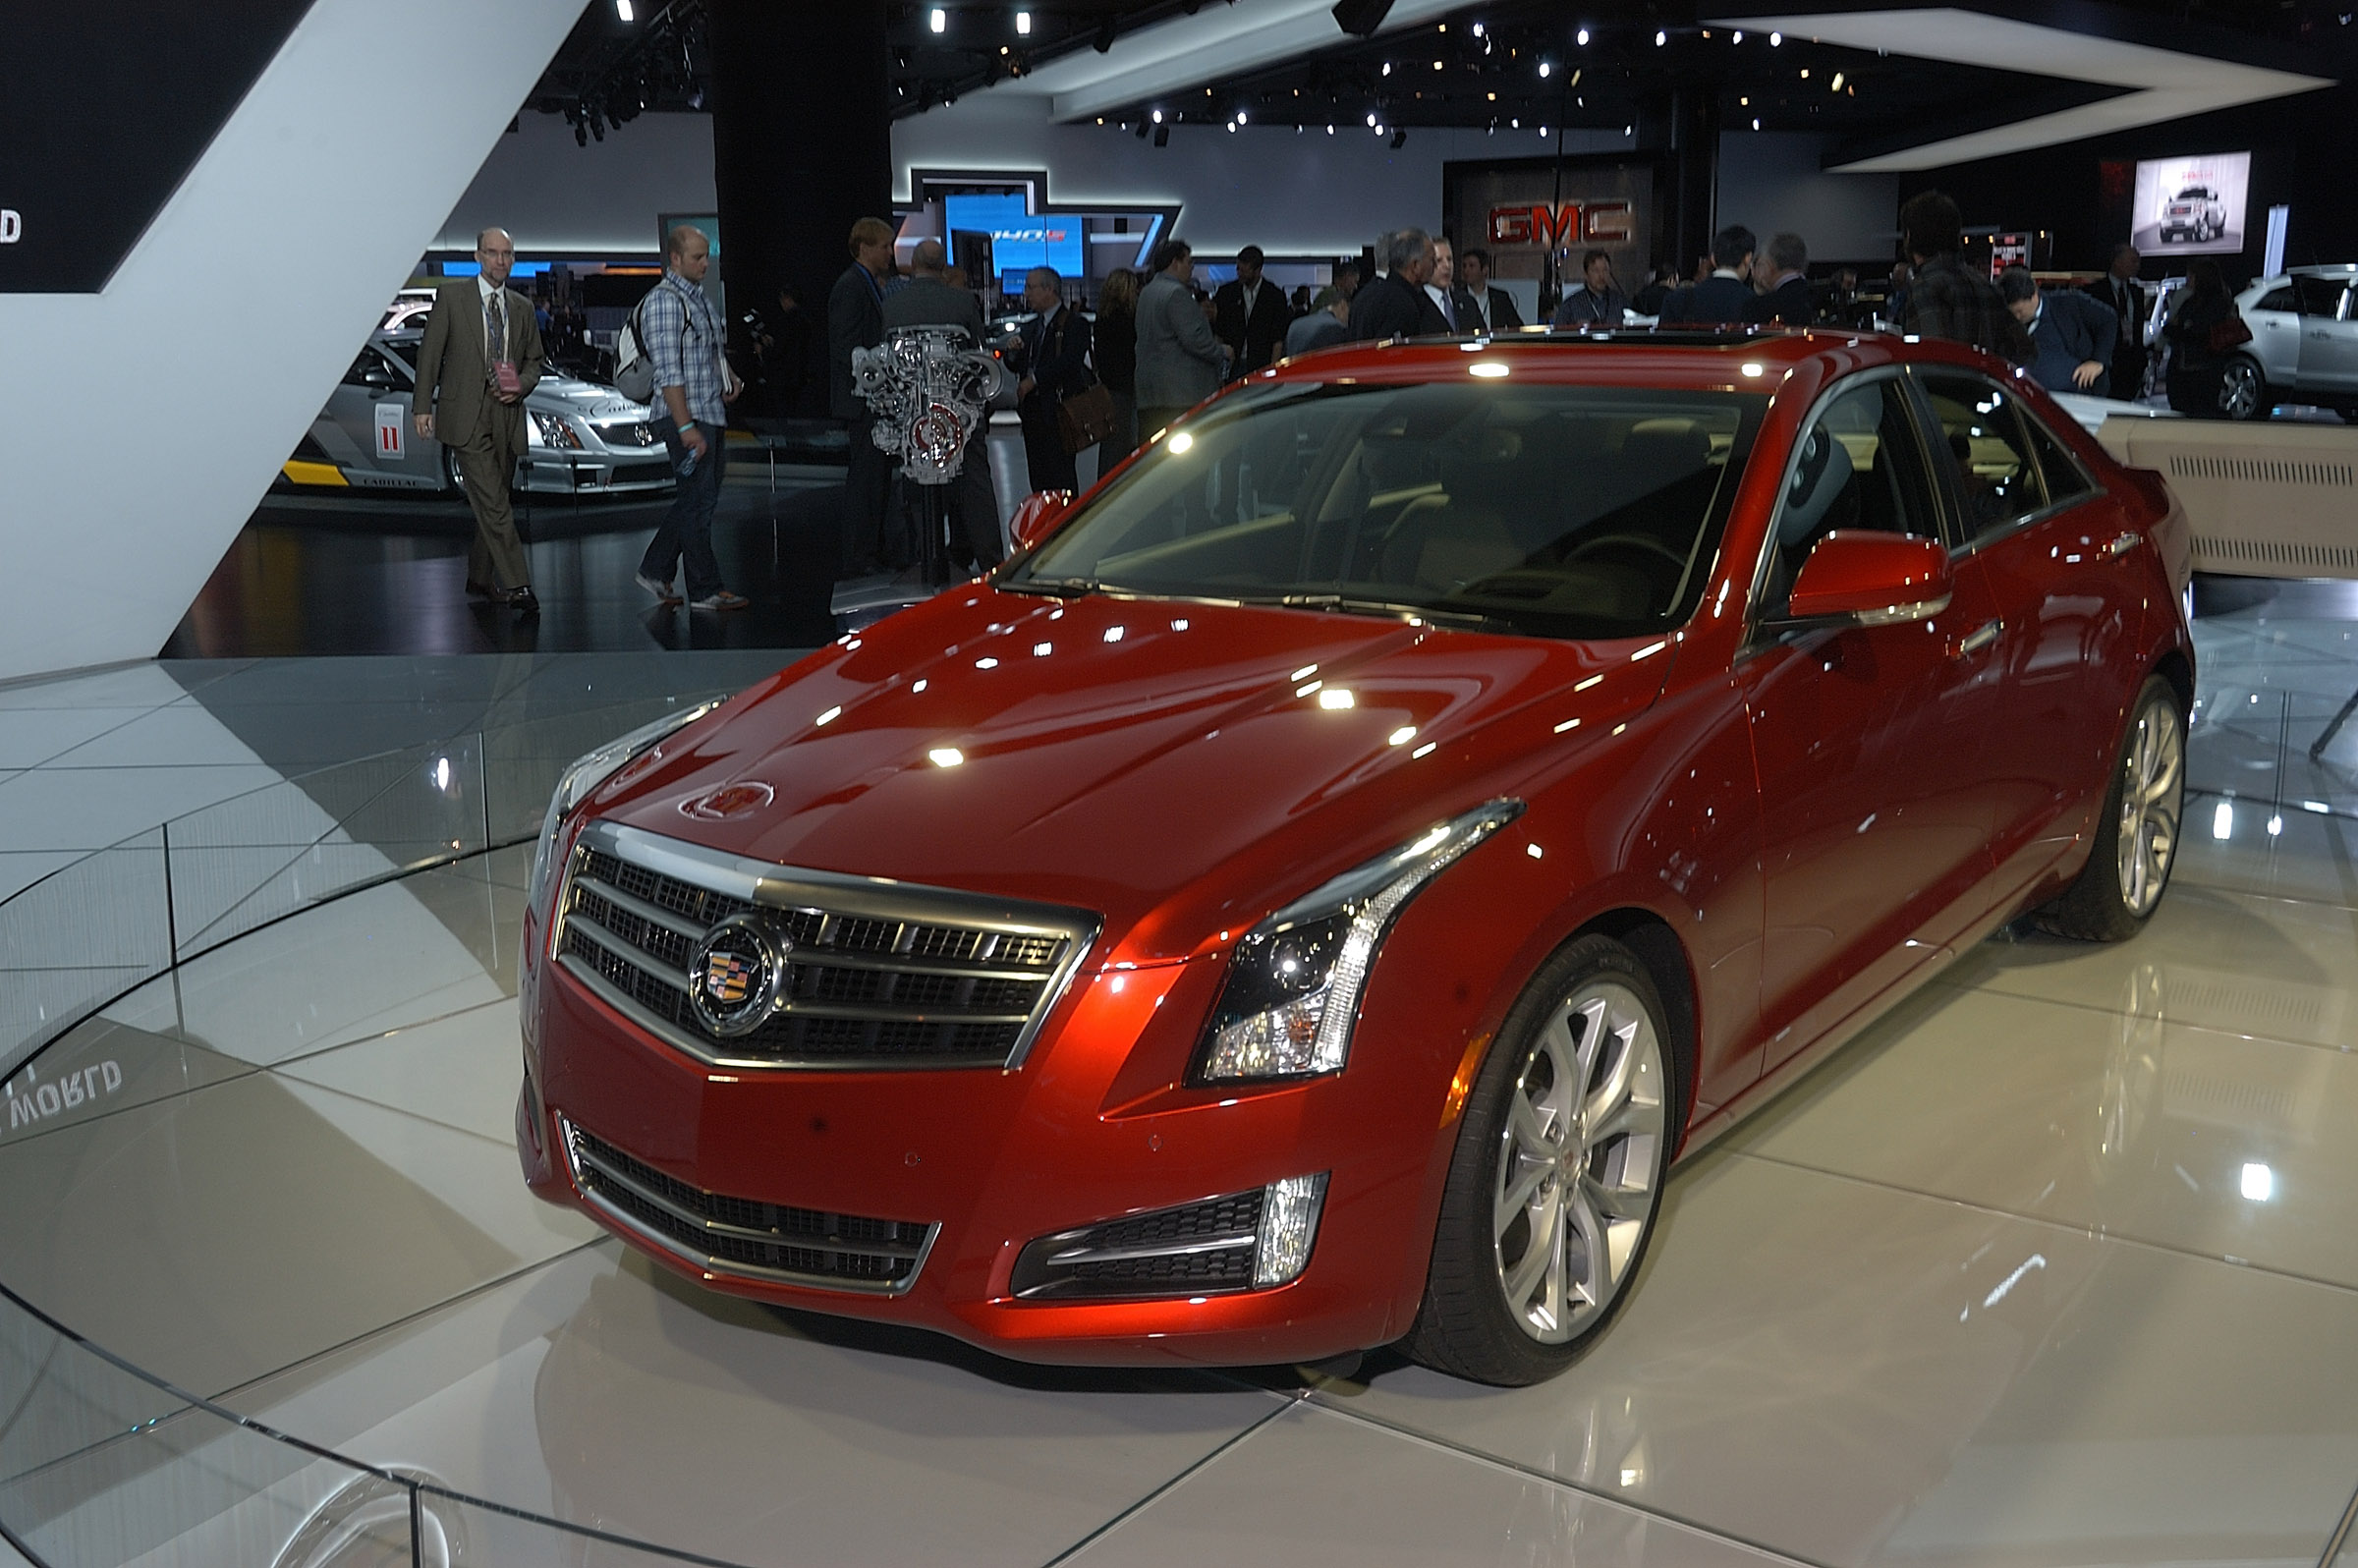 2013 cadillac ats detroit 2012 picture 63319. Black Bedroom Furniture Sets. Home Design Ideas